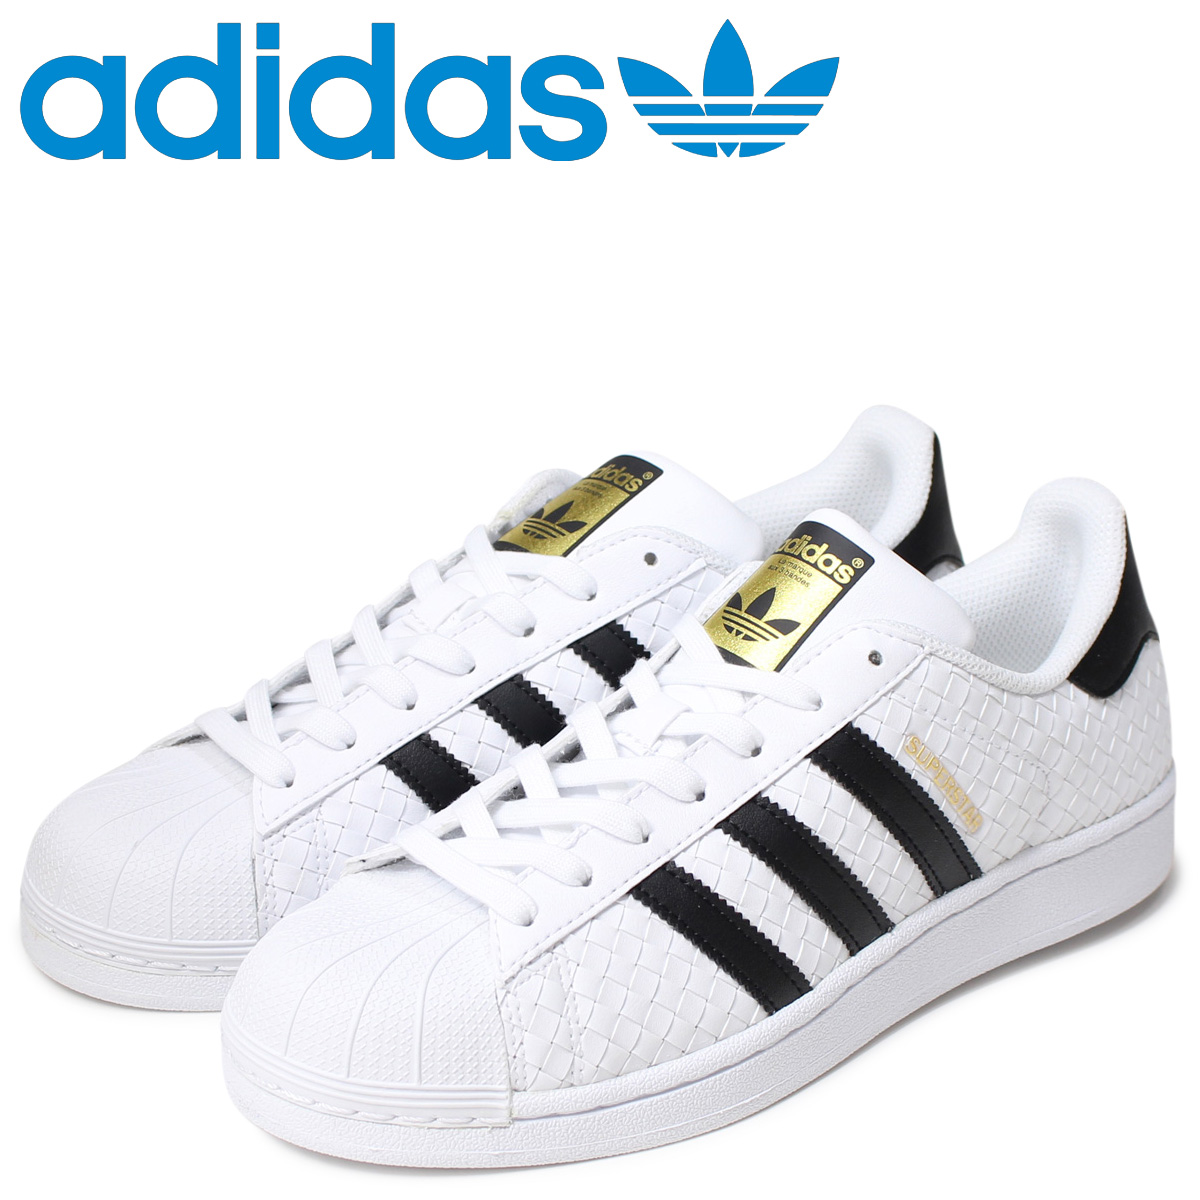 Adidas Super Star Strass Bianca Shop Online